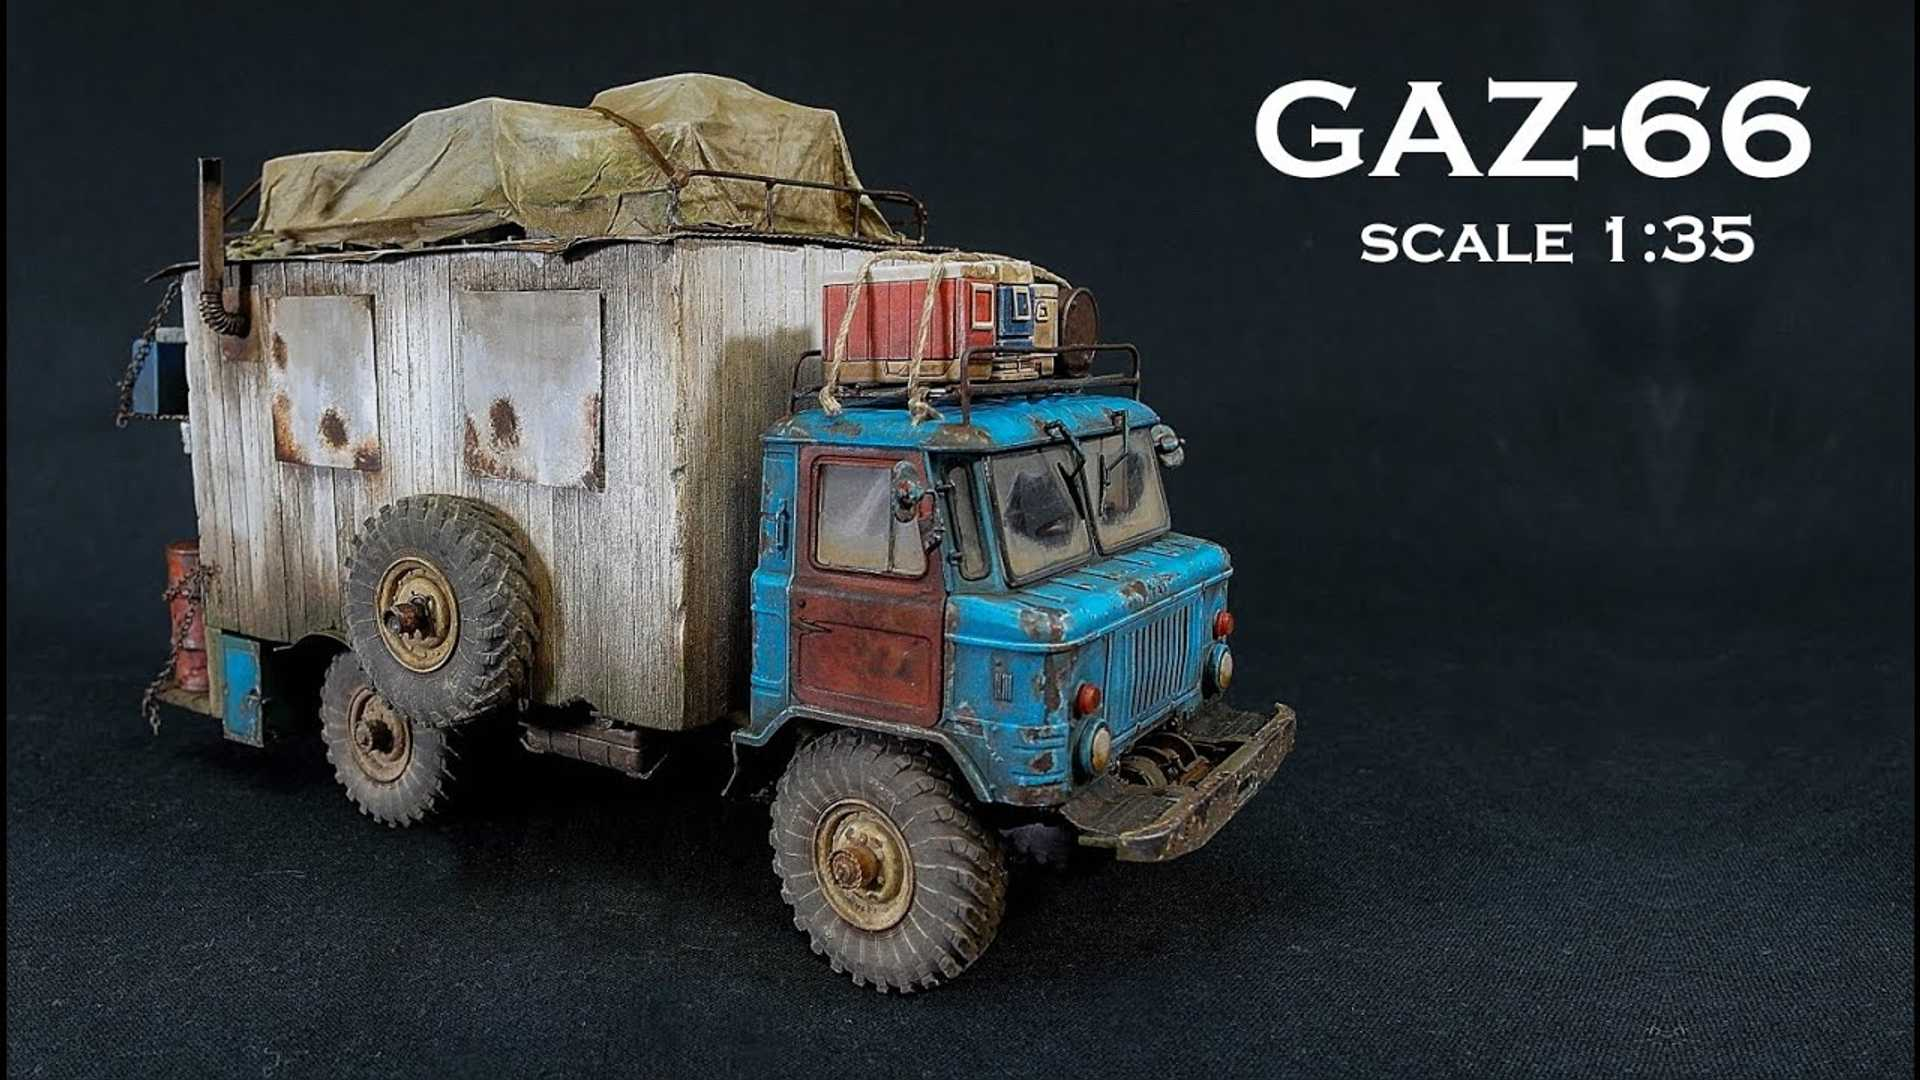 Watch This Incredibly Detailed GAZ Camper Scale Model Come Alive